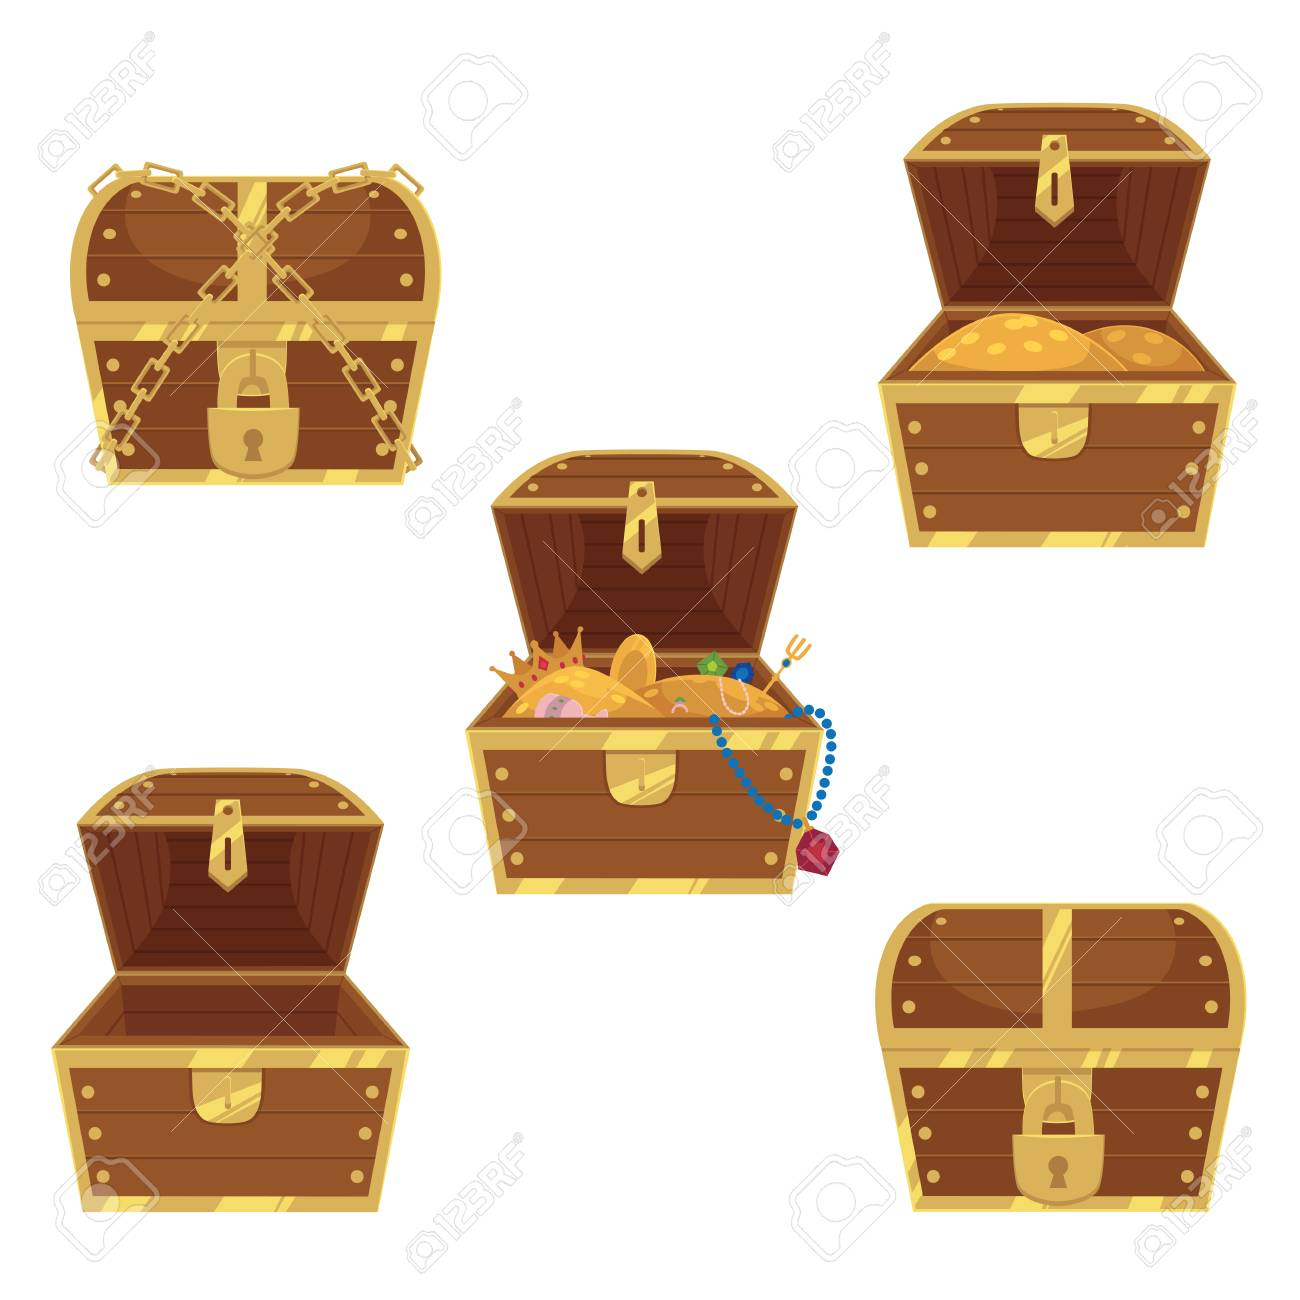 Open and closed pirate treasure chests, locked, empty, full of gold and jewelry, flat style cartoon vector illustration isolated on white background. Set of flat style treasure chests, full and empty - 88835799